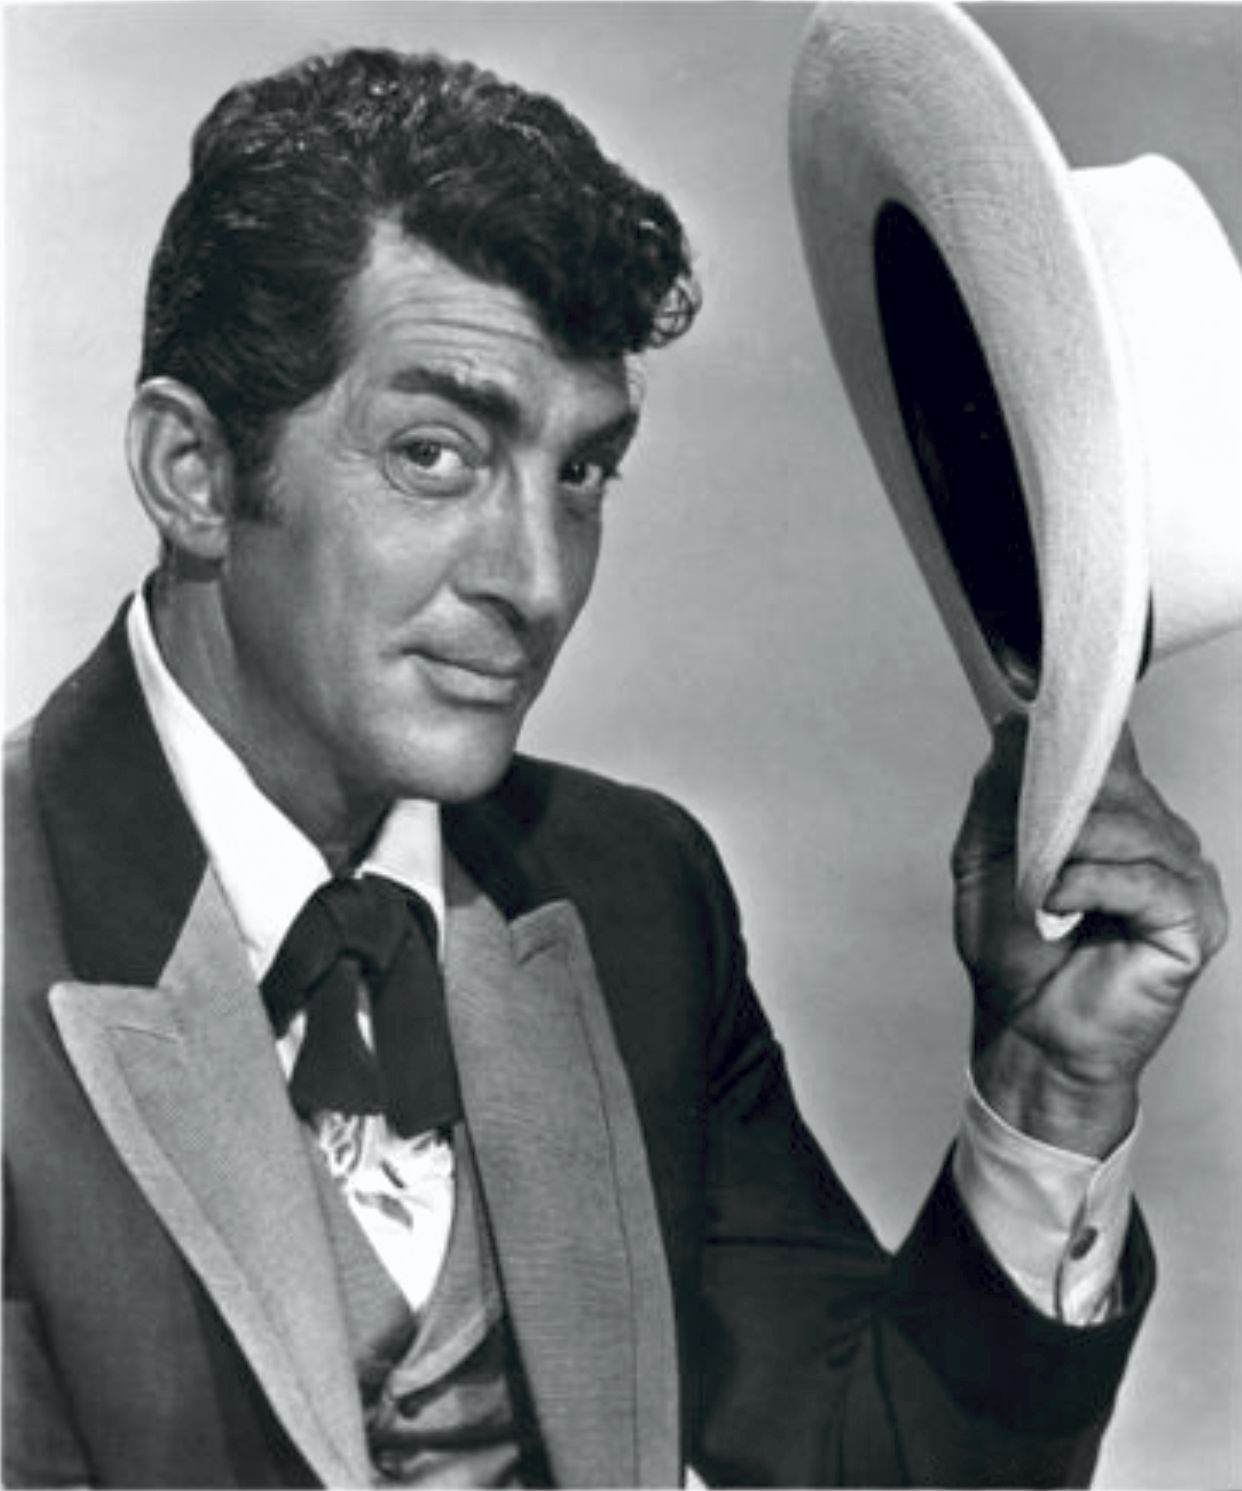 find out some memorable information about mr dean martin